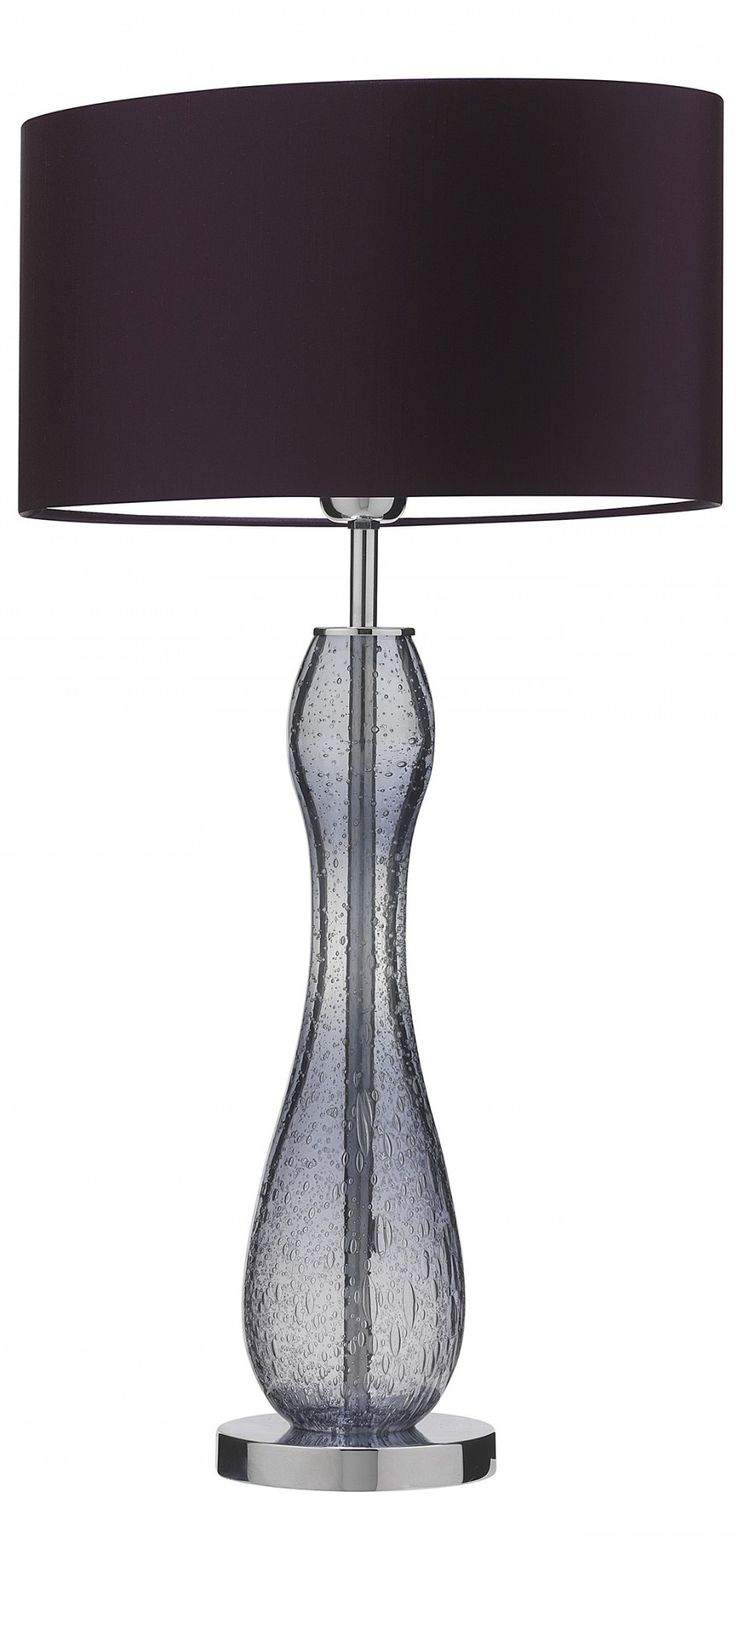 562 best Table Lamps images on Pinterest | Lamp ideas, Black and ...